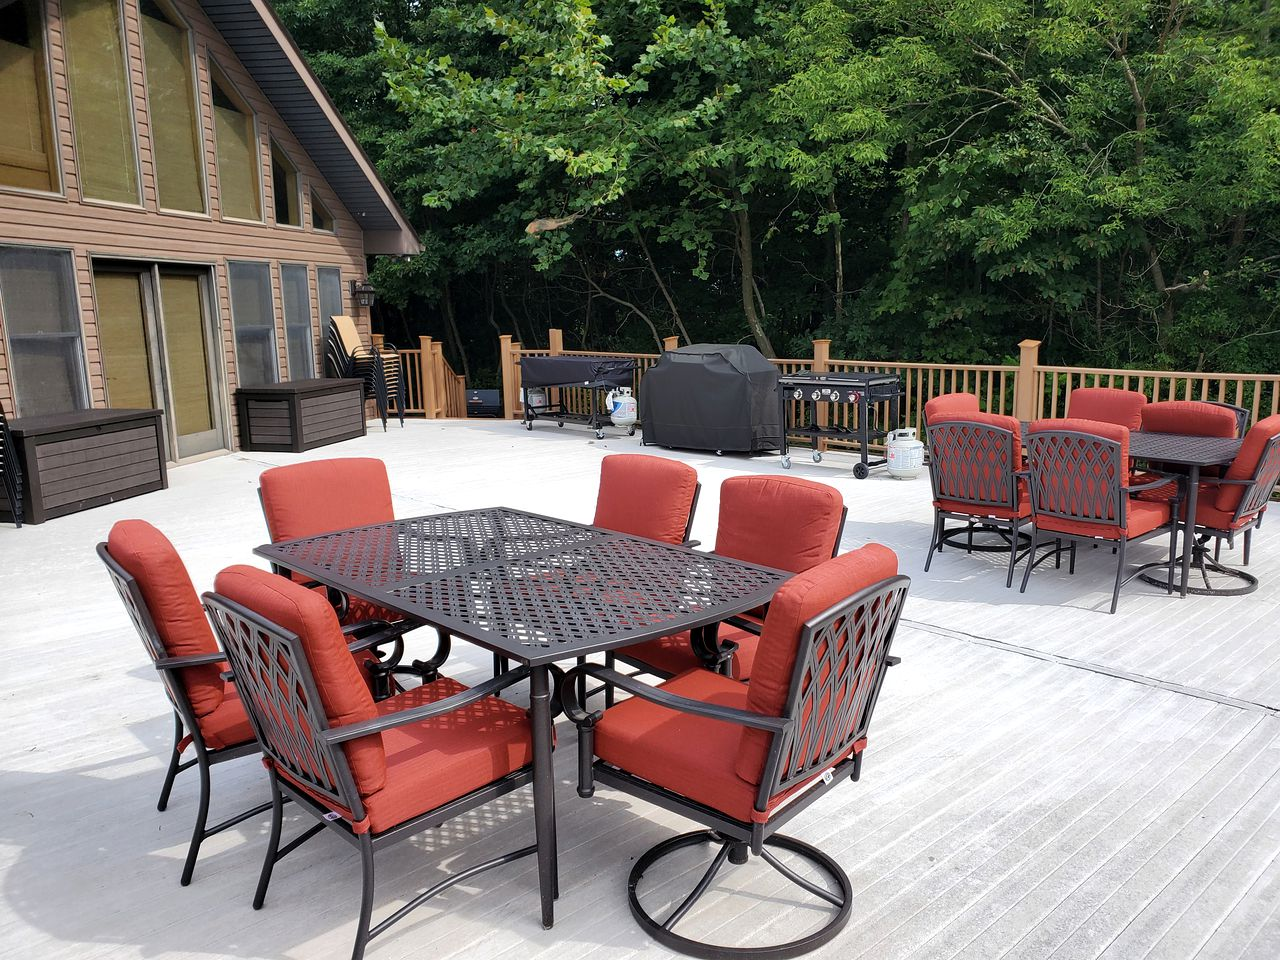 This Hocking Hills accommodation is ideal for family getaways in Ohio